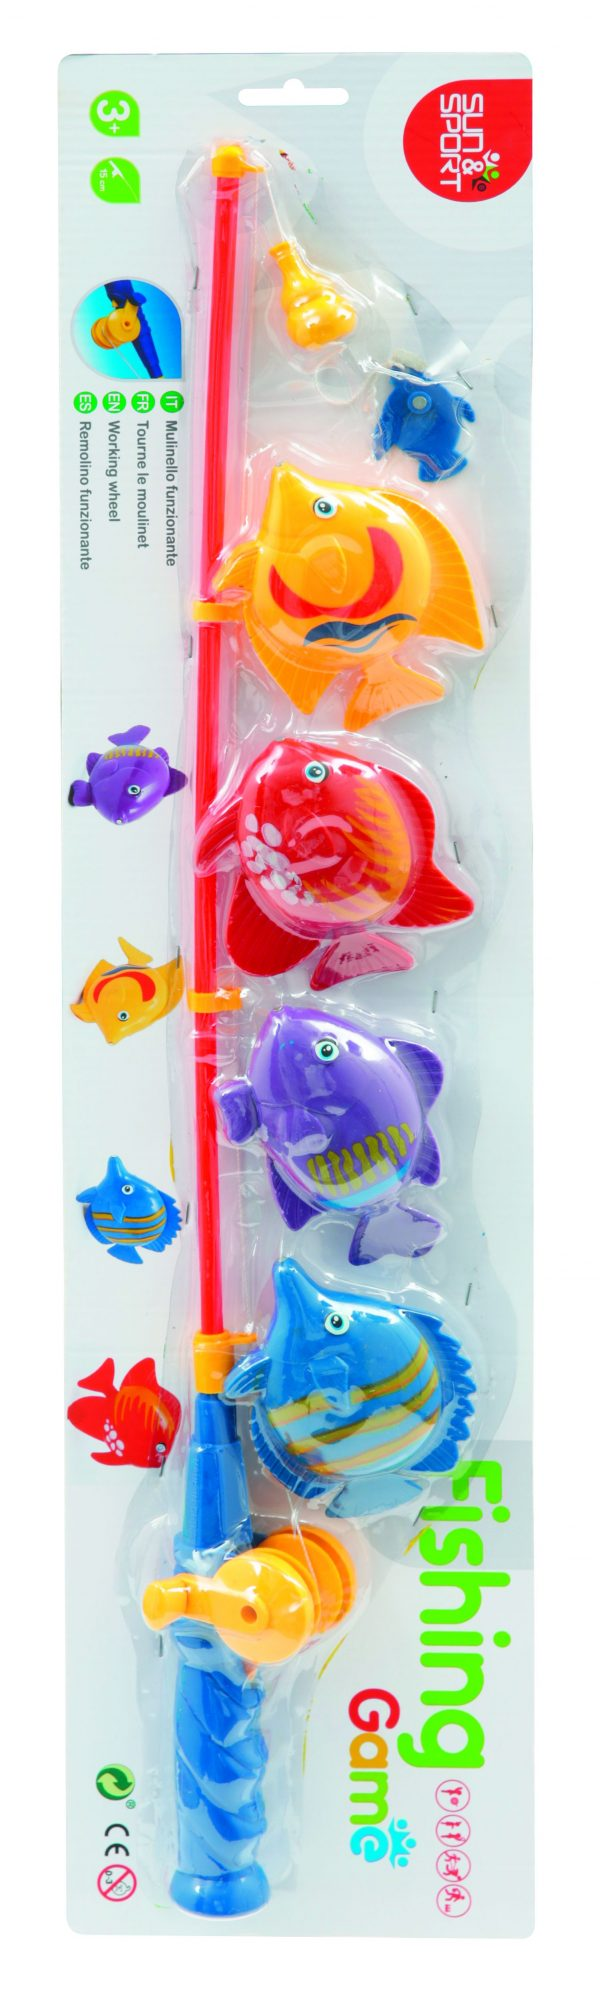 SUN&SPORT PESCA PESCI - Sun&sport - Toys Center - SUN&SPORT - Fino al -30%